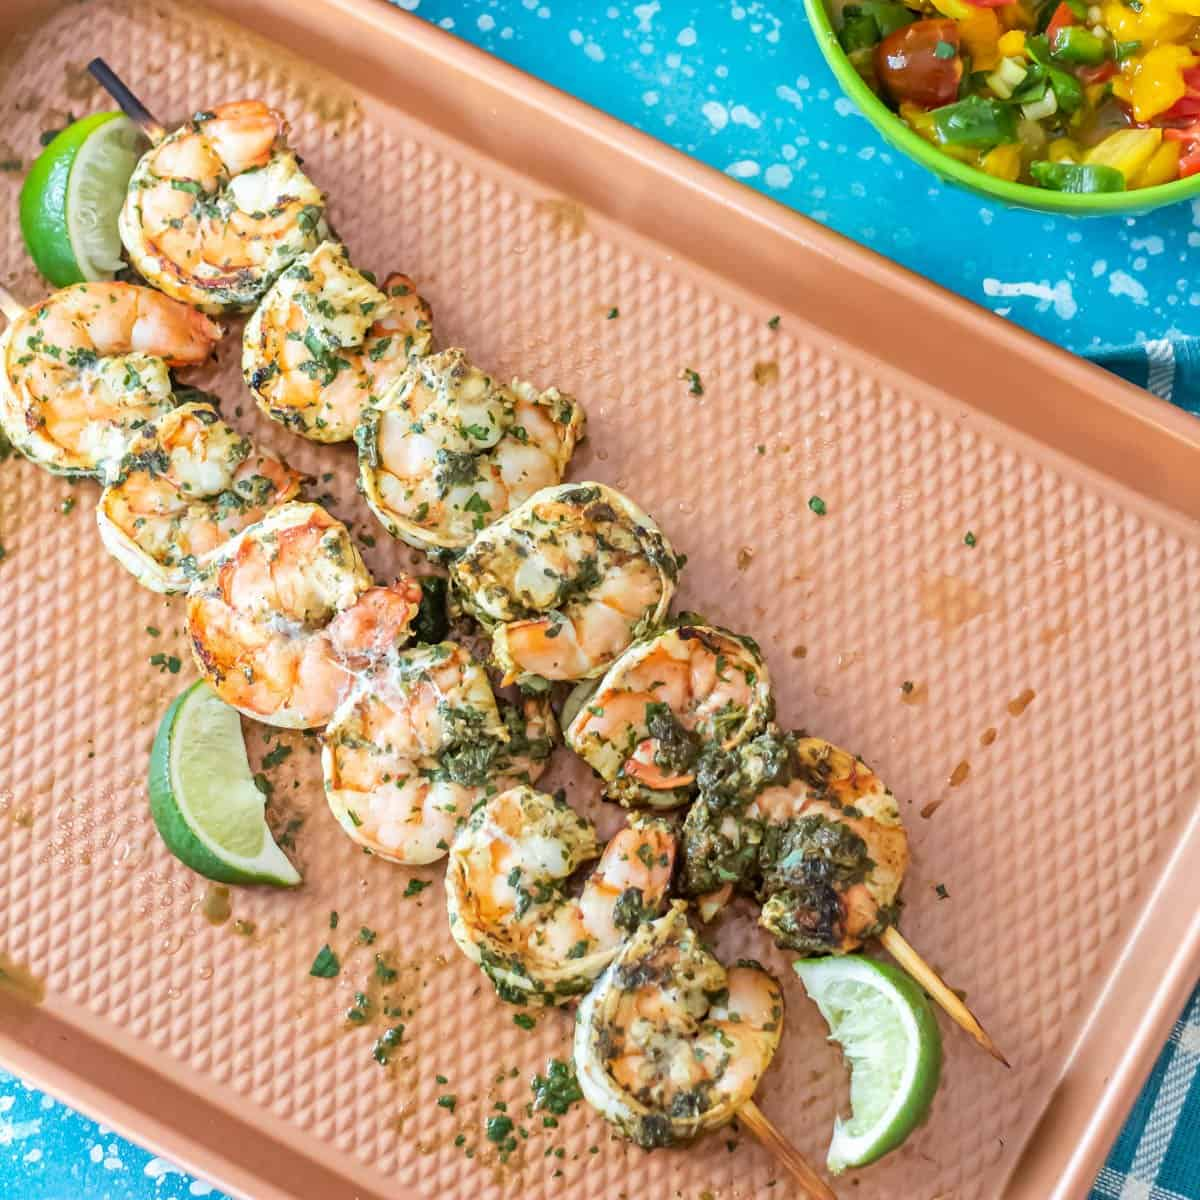 Spicy Cilantro Lime Shrimp Skewers a close up on a copper baking tray on bamboo skewers.